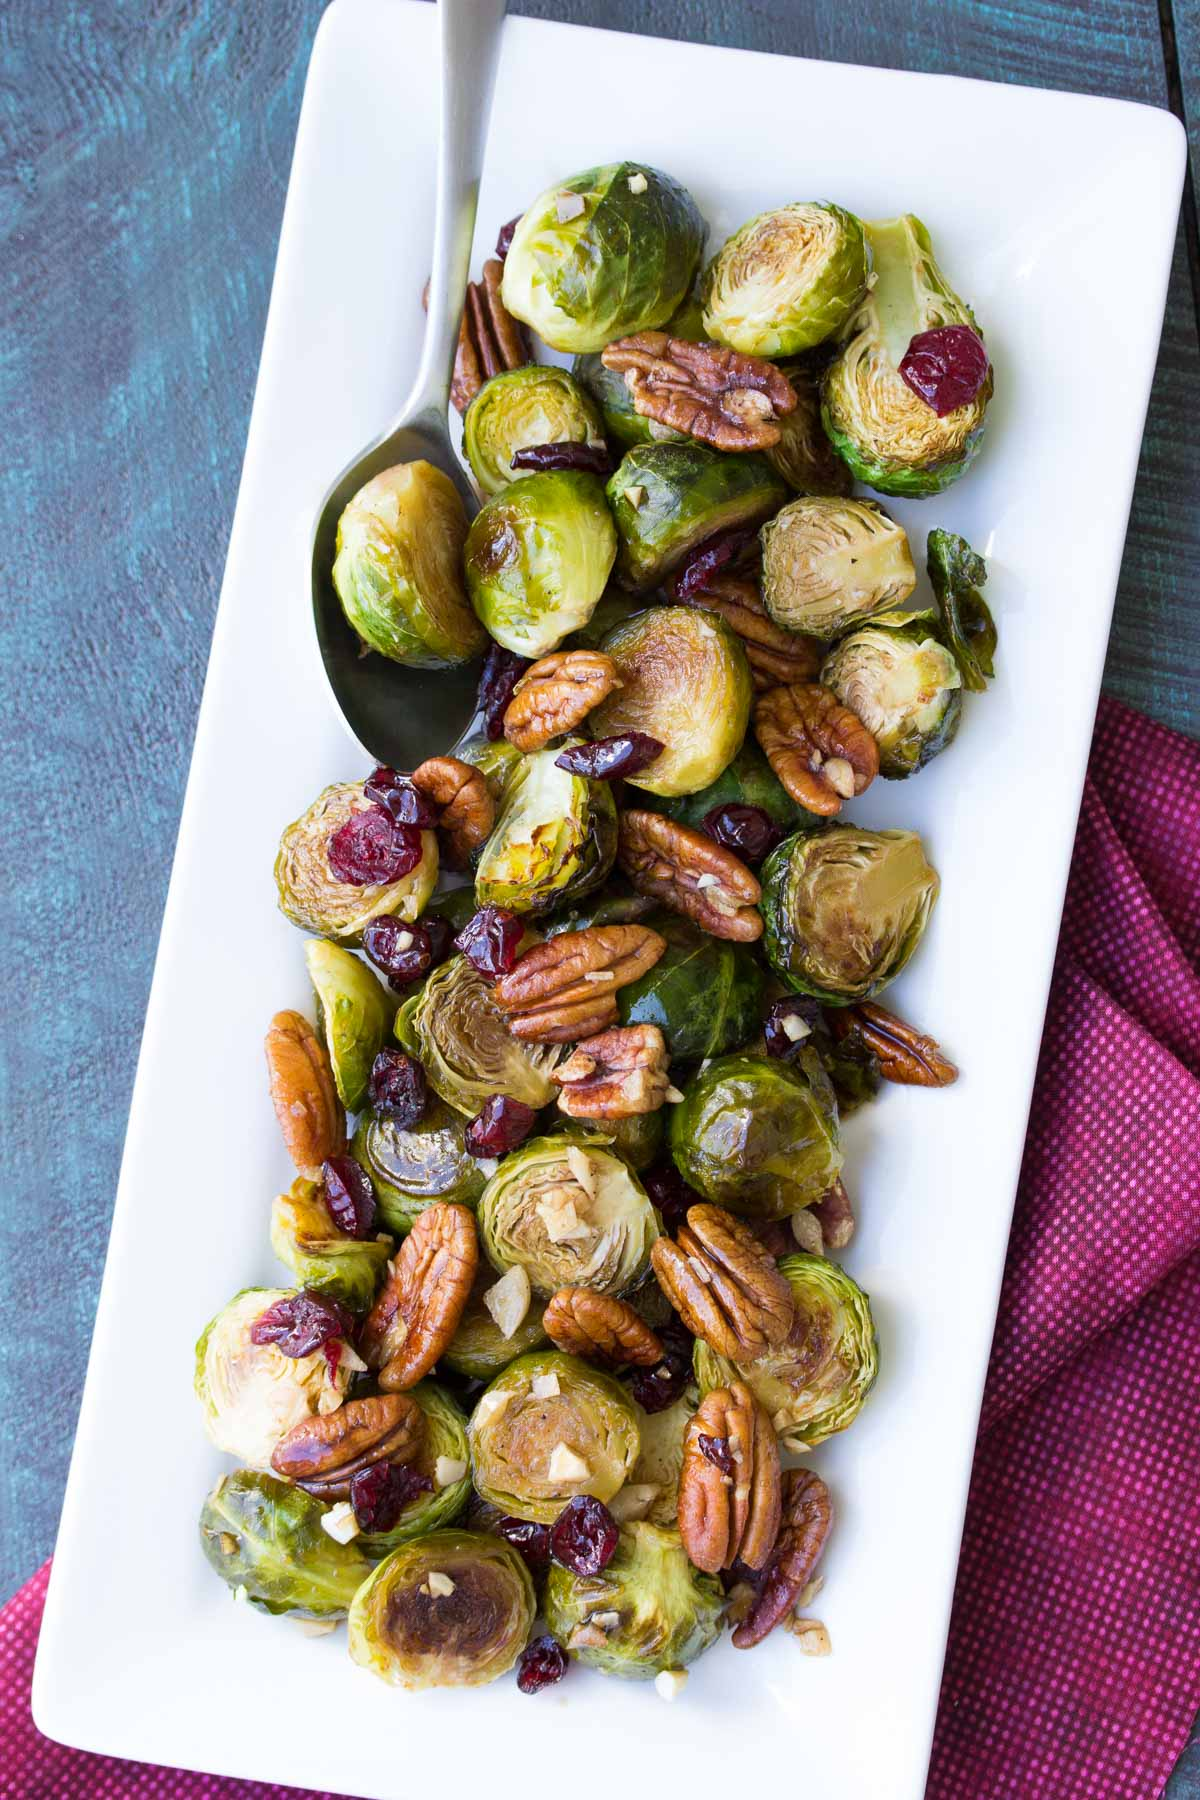 maple-balsamic-roasted-brussels-sprouts-1200-0607.jpg